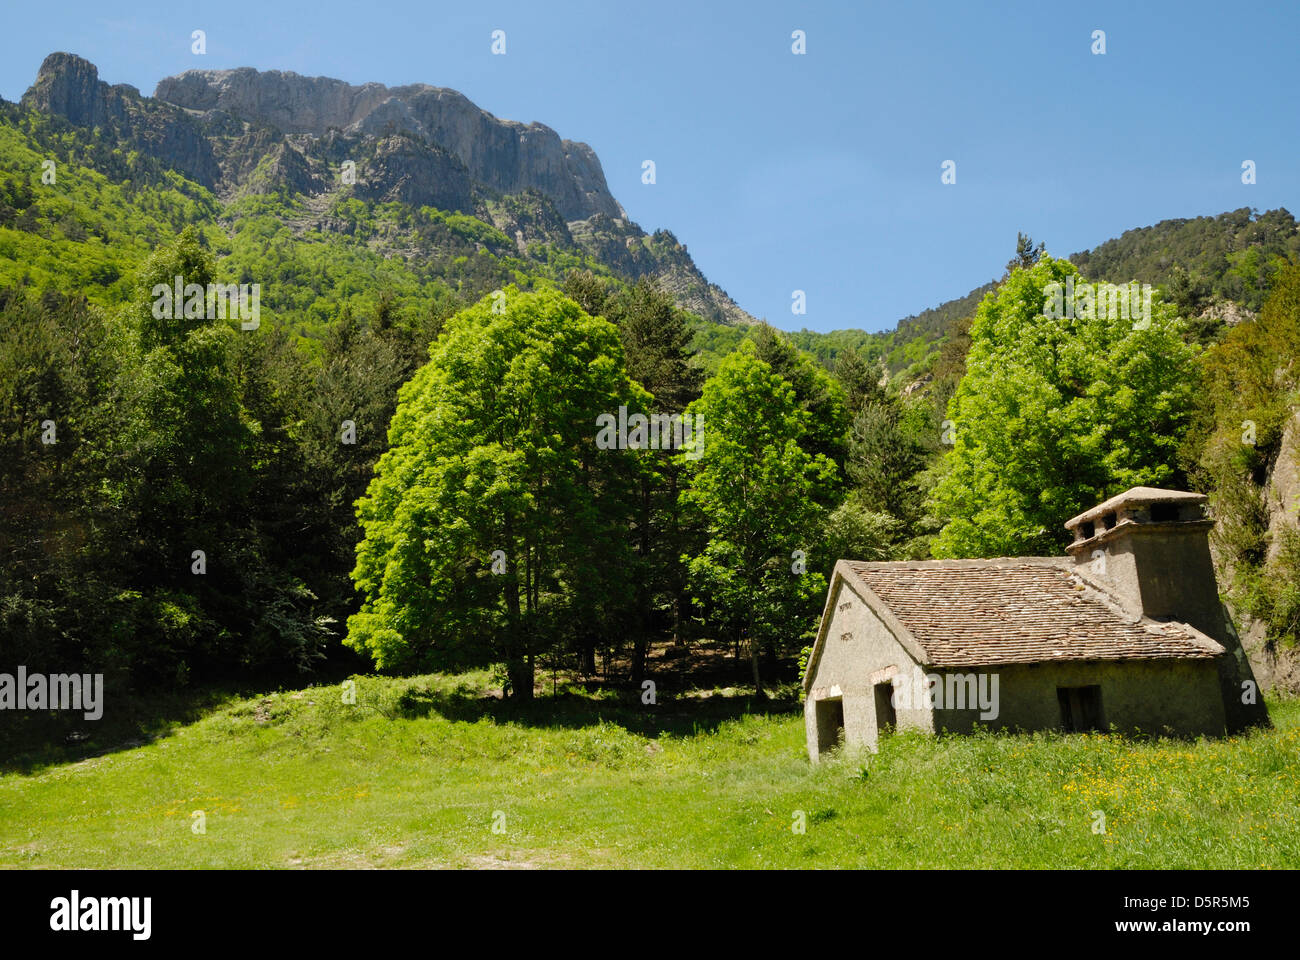 Mountain refuge in the Hecho Valley, spanish Pyrenees - Stock Image